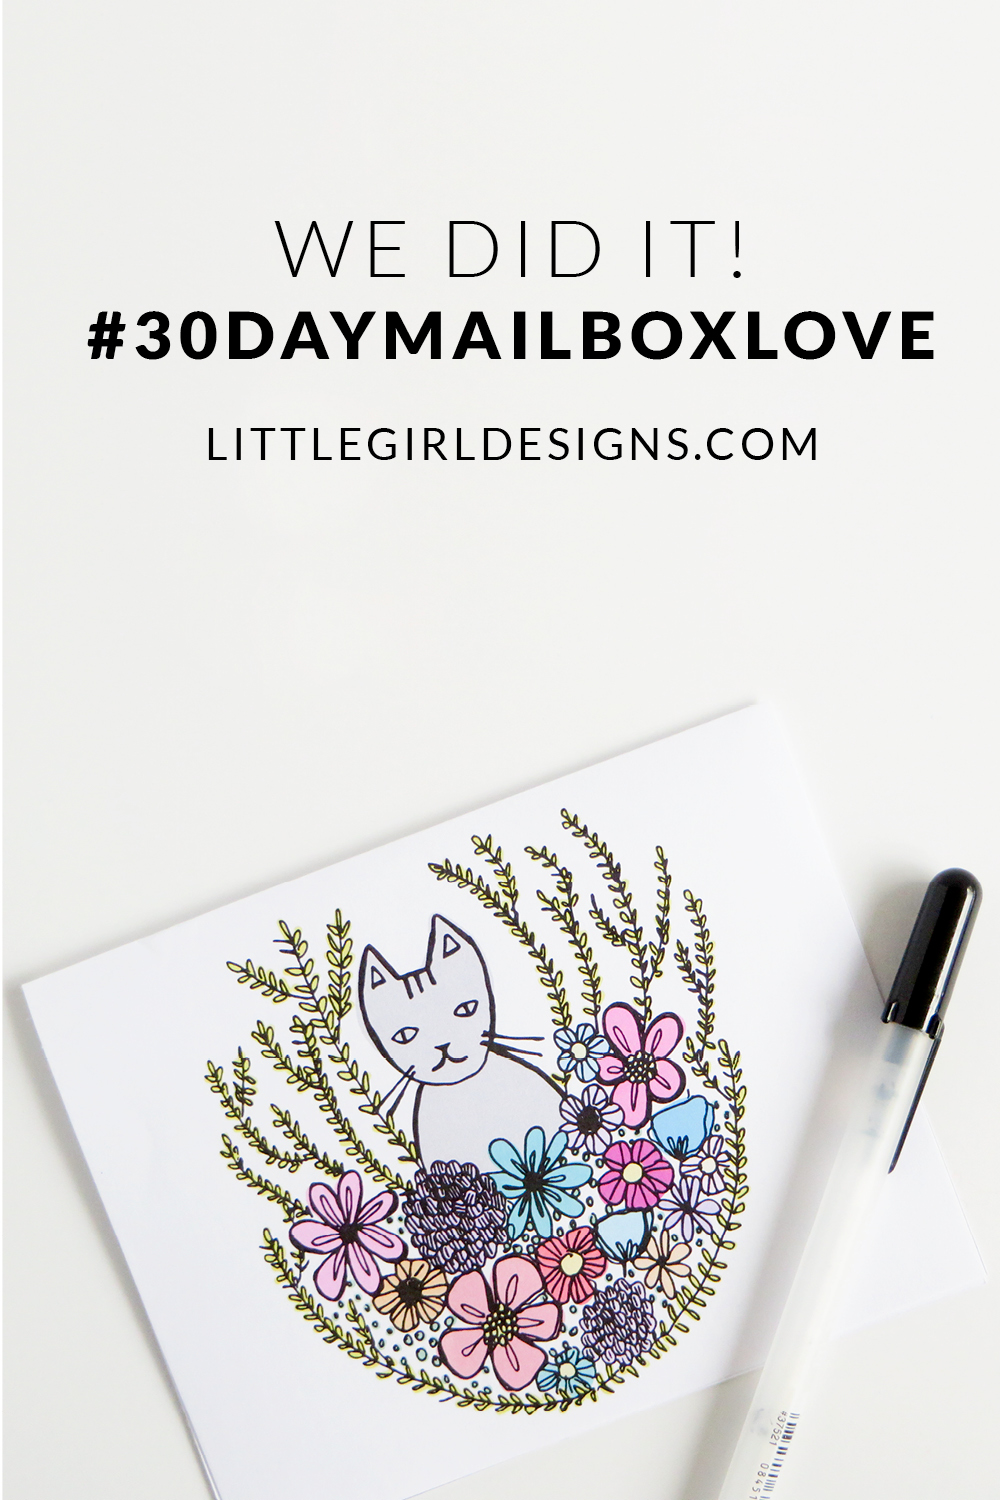 A tiny glimpse of the #30daymailboxlove challenge by littlegirldesigns.com. Join us to share more real mail and to encourage our friends! :)